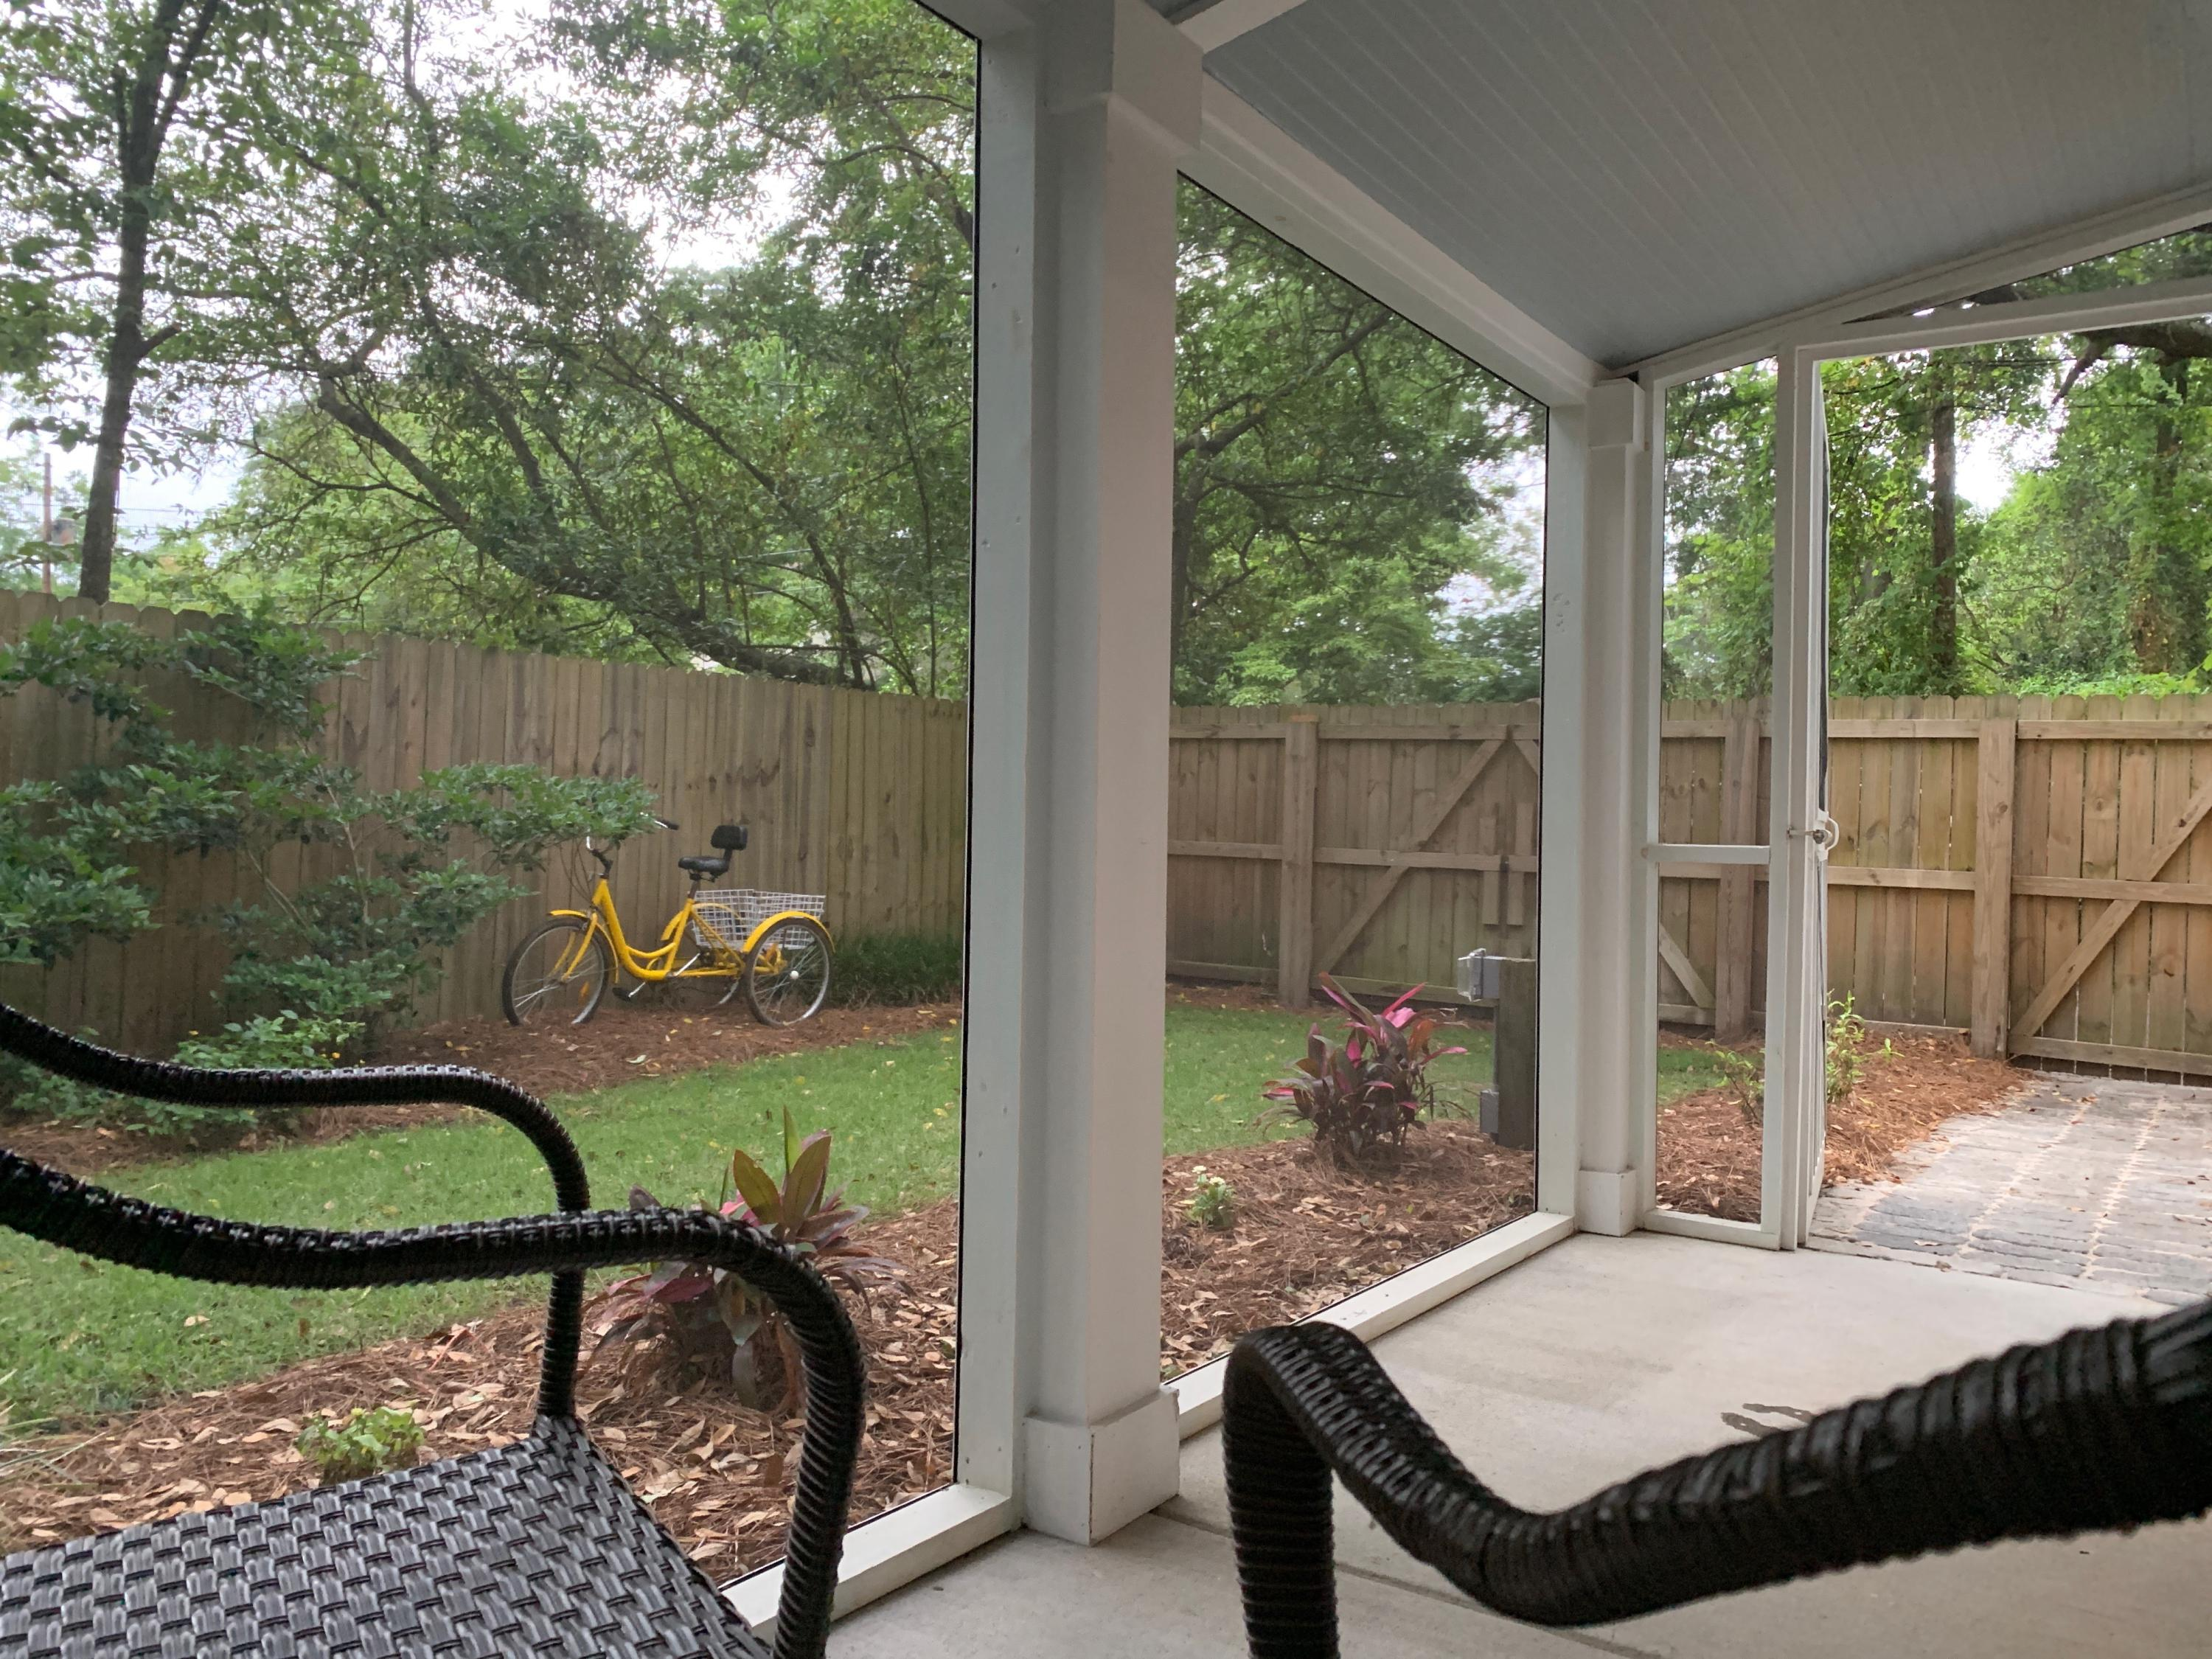 Riverland Terrace Homes For Sale - 2138 Wappoo, Charleston, SC - 11